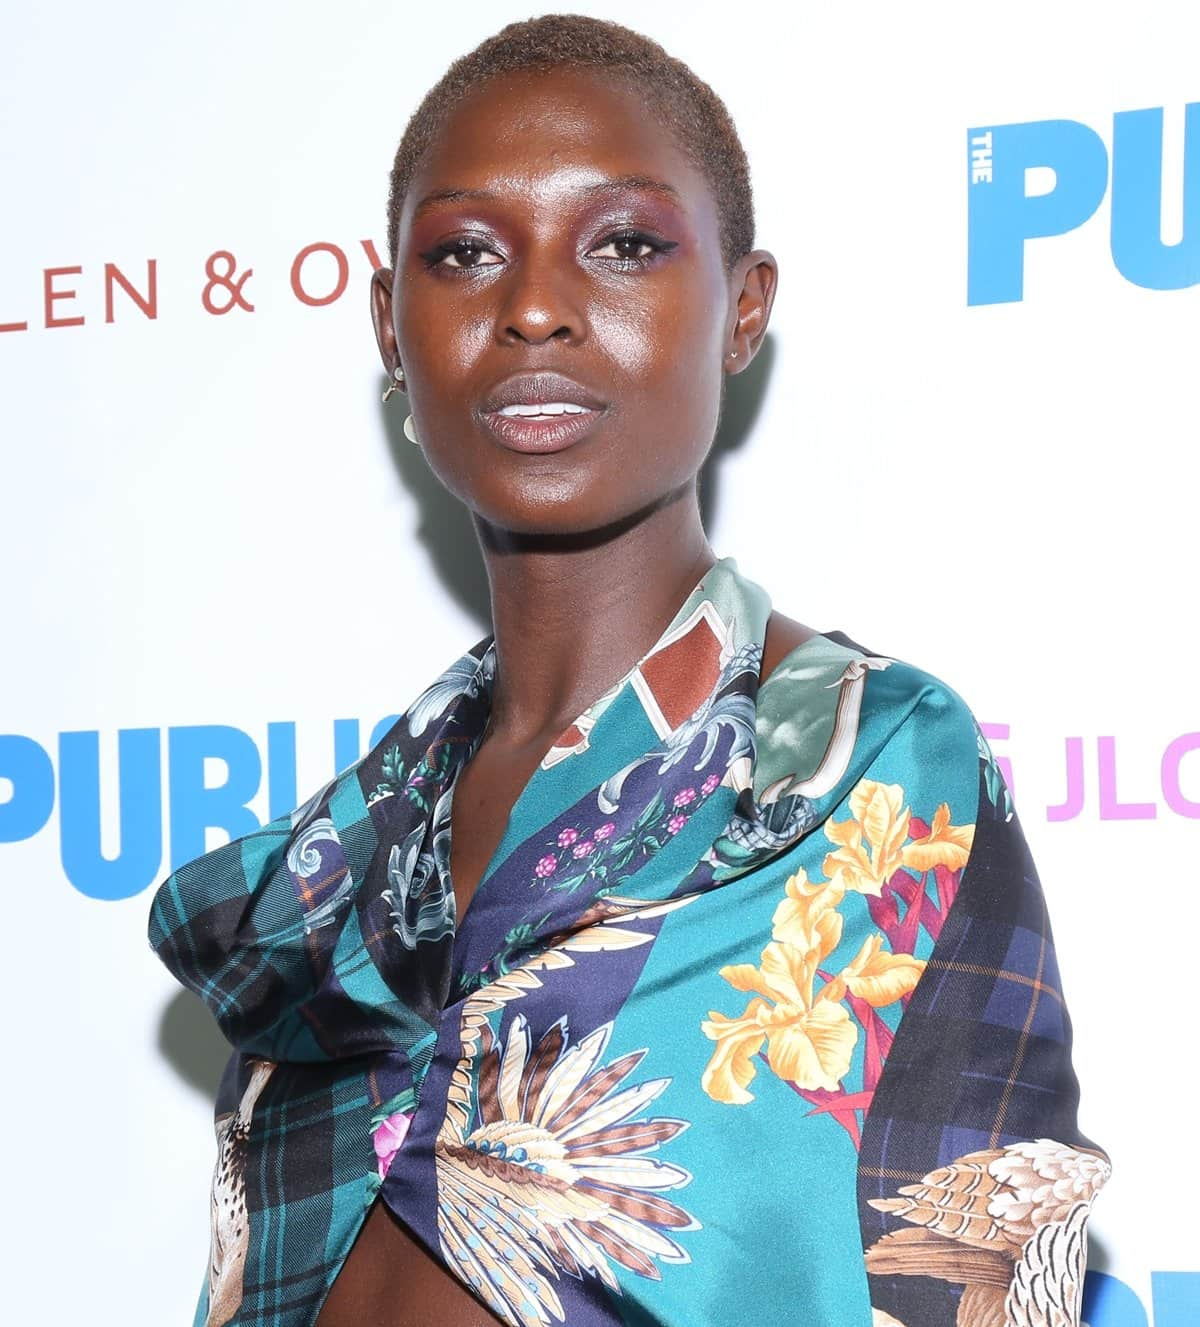 British actress Jodie Turner-Smith is known for her work in The Last Ship (2017), Nightflyers (2018), Queen & Slim (2019), and Without Remorse (2021)